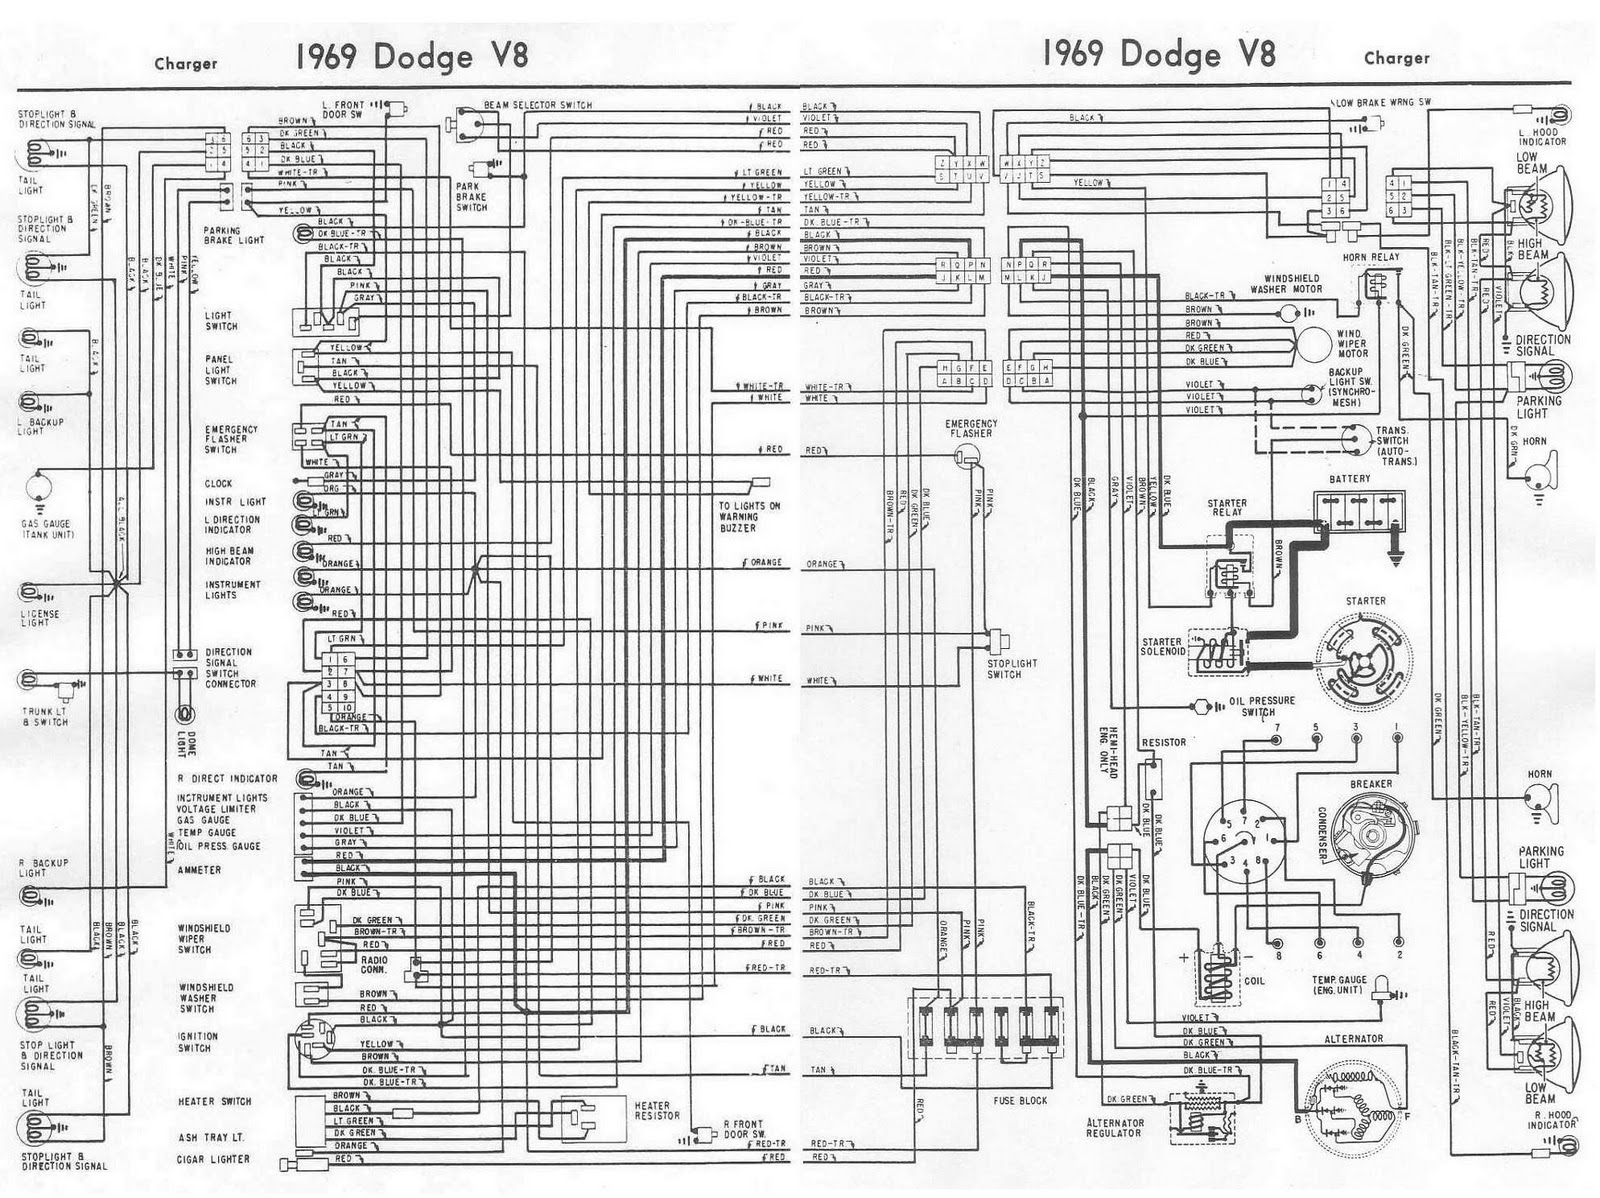 1969+Dodge+Charger+V8+Complete+Wiring+Diagram dodge charger 1969 v8 complete electrical wiring diagram all dodge wiring harness diagram at soozxer.org